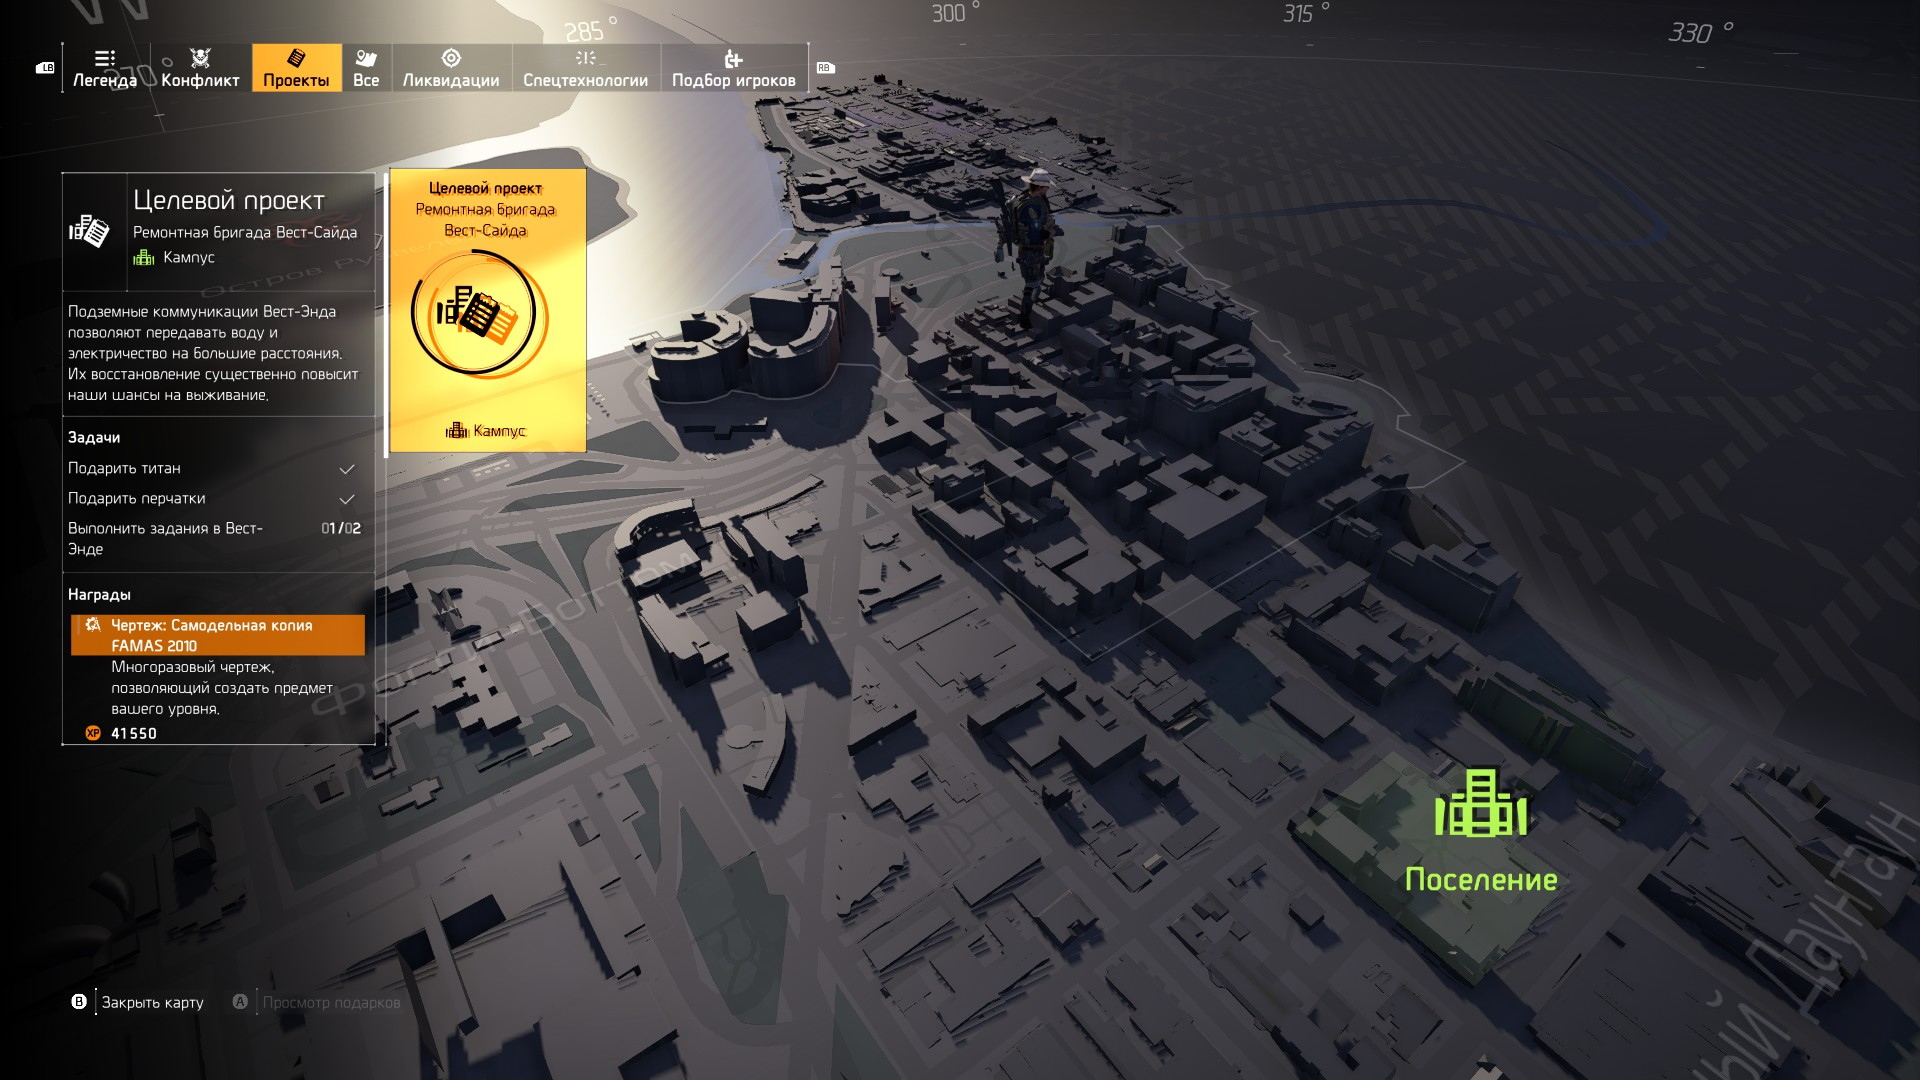 Tom Clancy's The Division® 22019-4-11-23-9-33.jpg - Tom Clancy's The Division 2